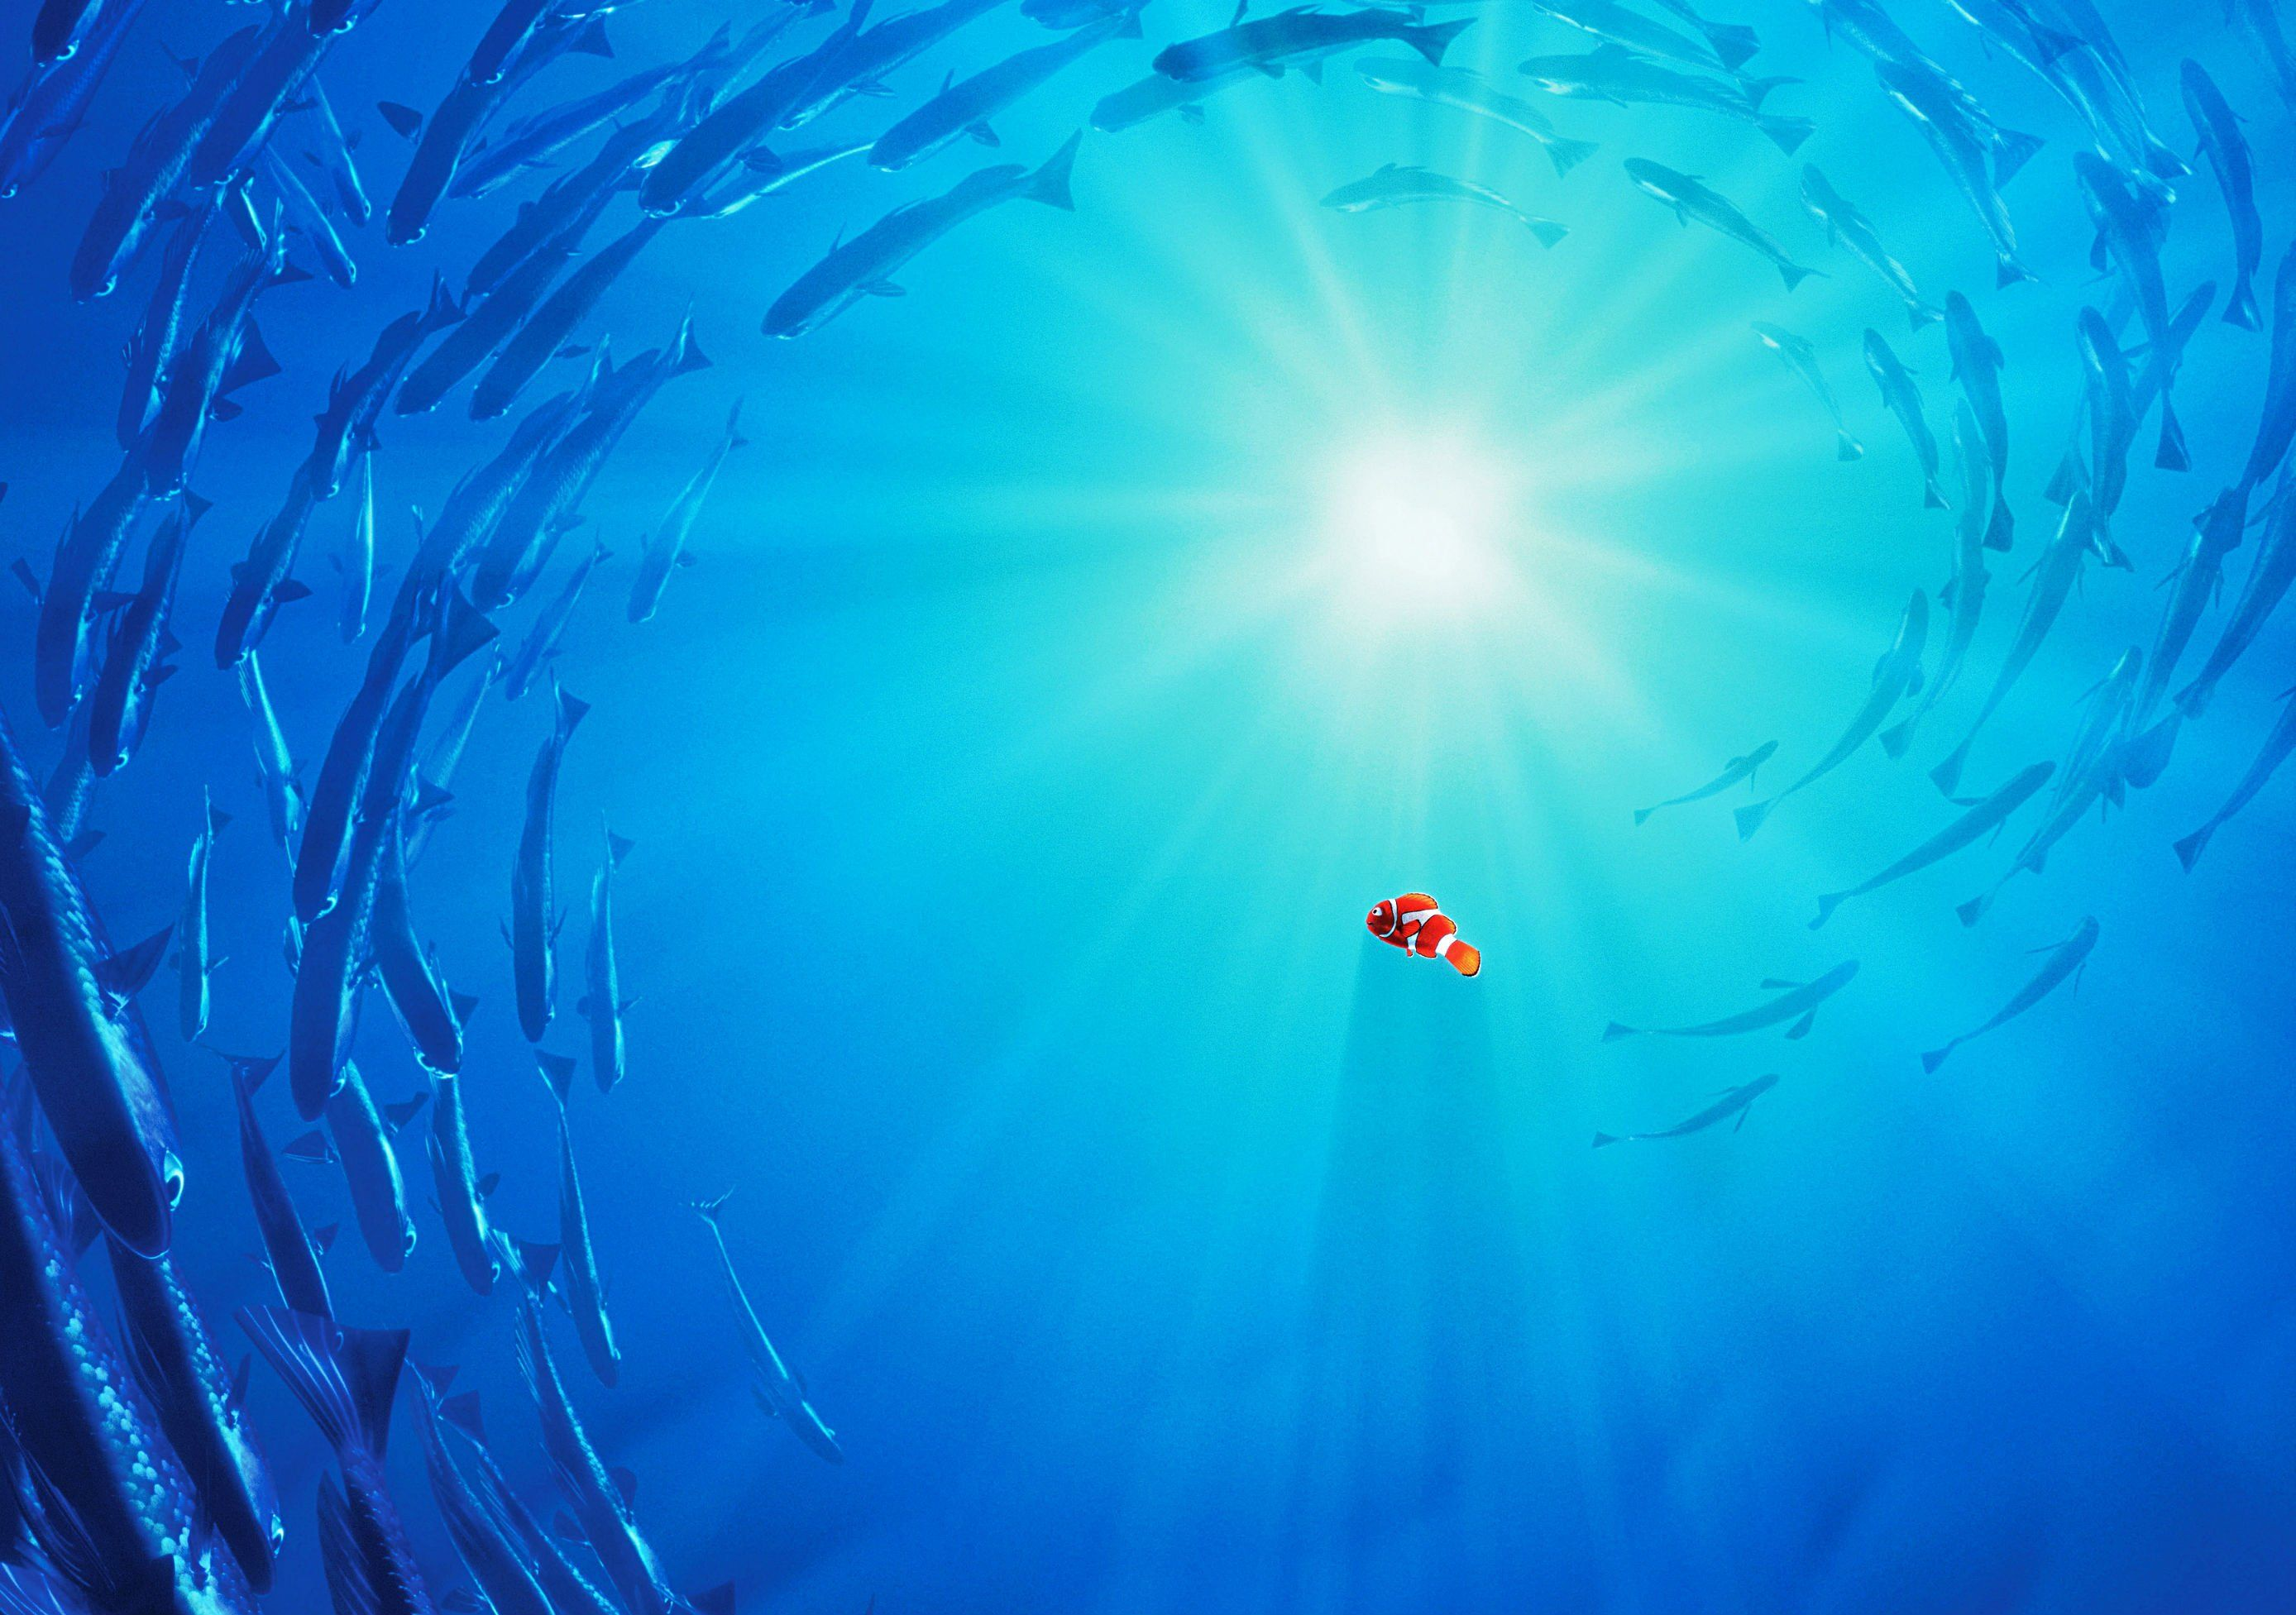 pinАлександр Третьяков on finding dory nemo | pinterest | wallpaper